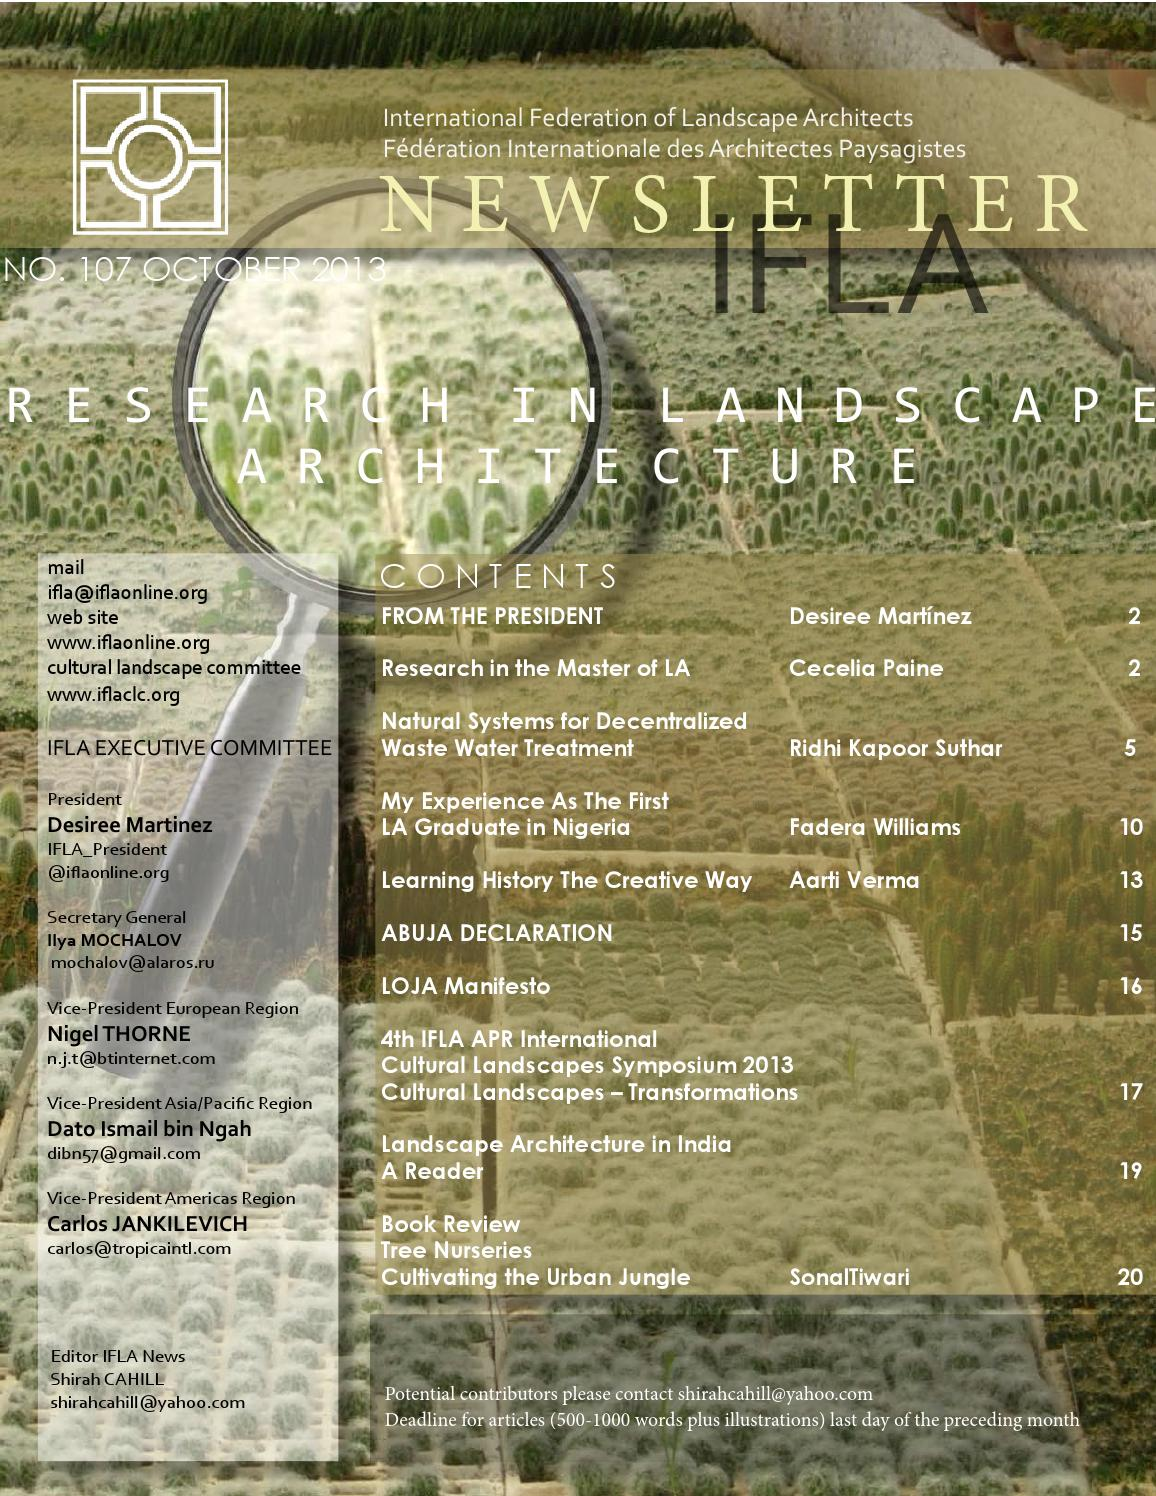 Ifla newsletter october 2013 by international federation for International federation of landscape architects